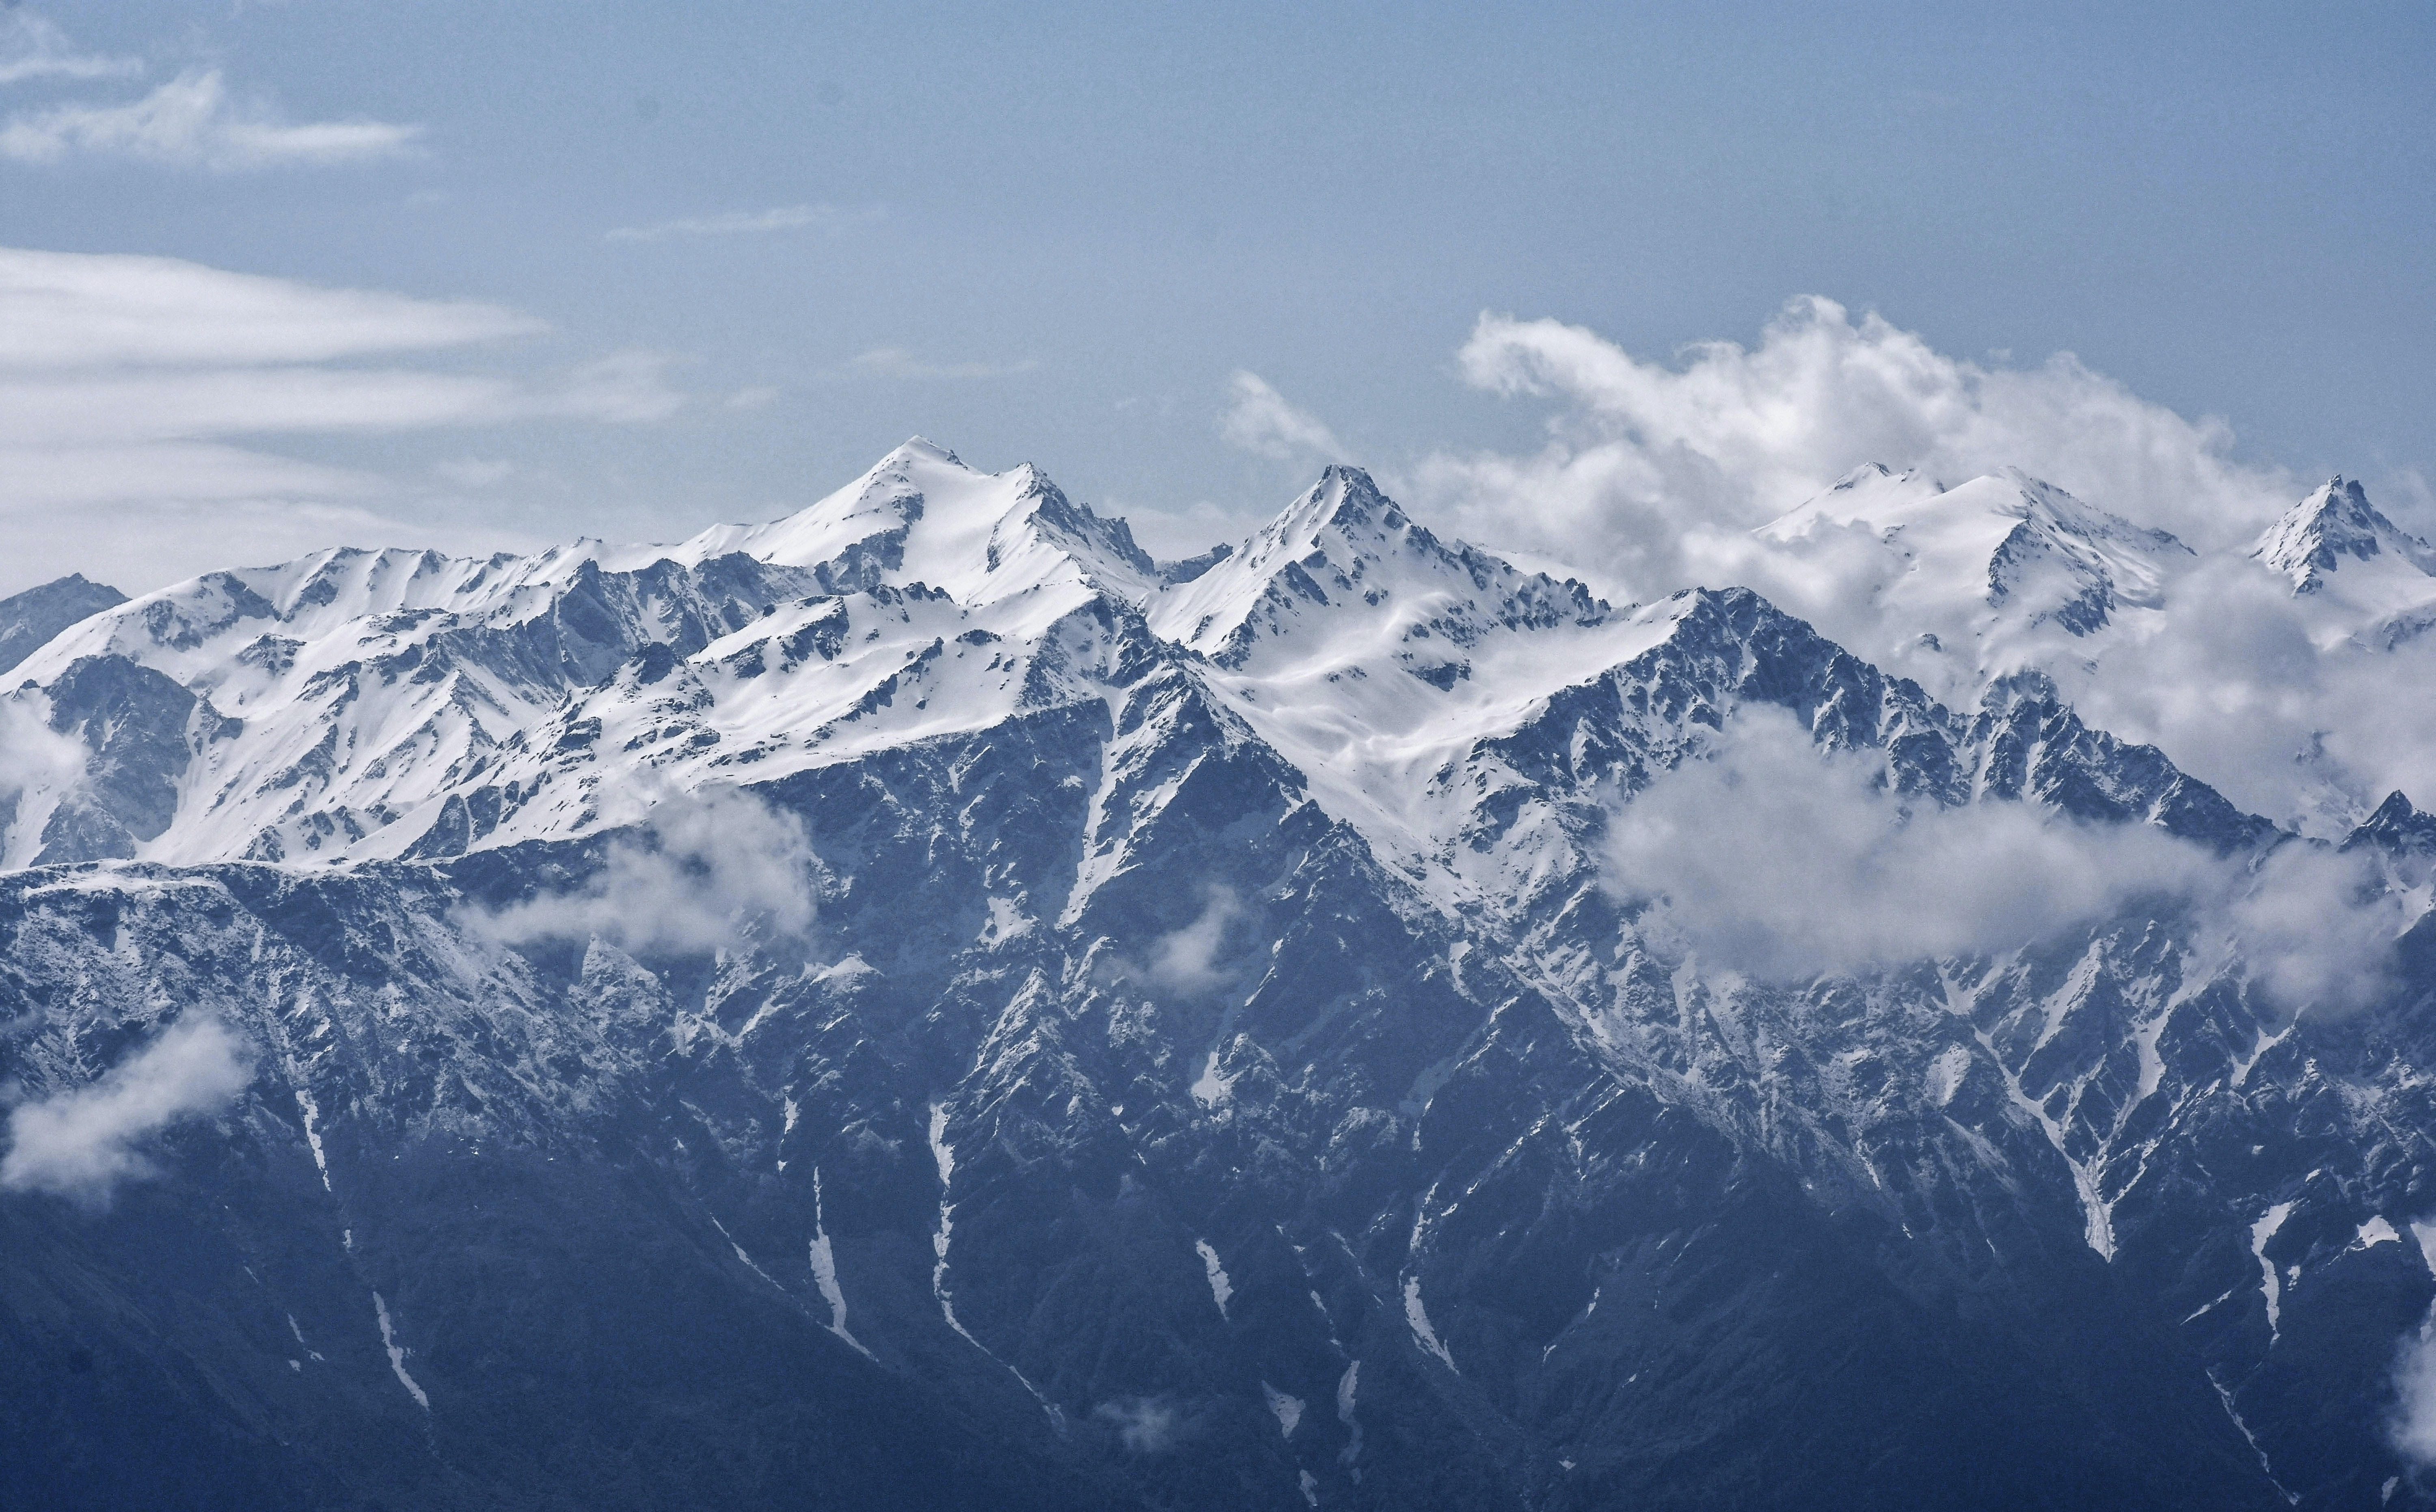 snow-covered mountains with white clouds during daytime